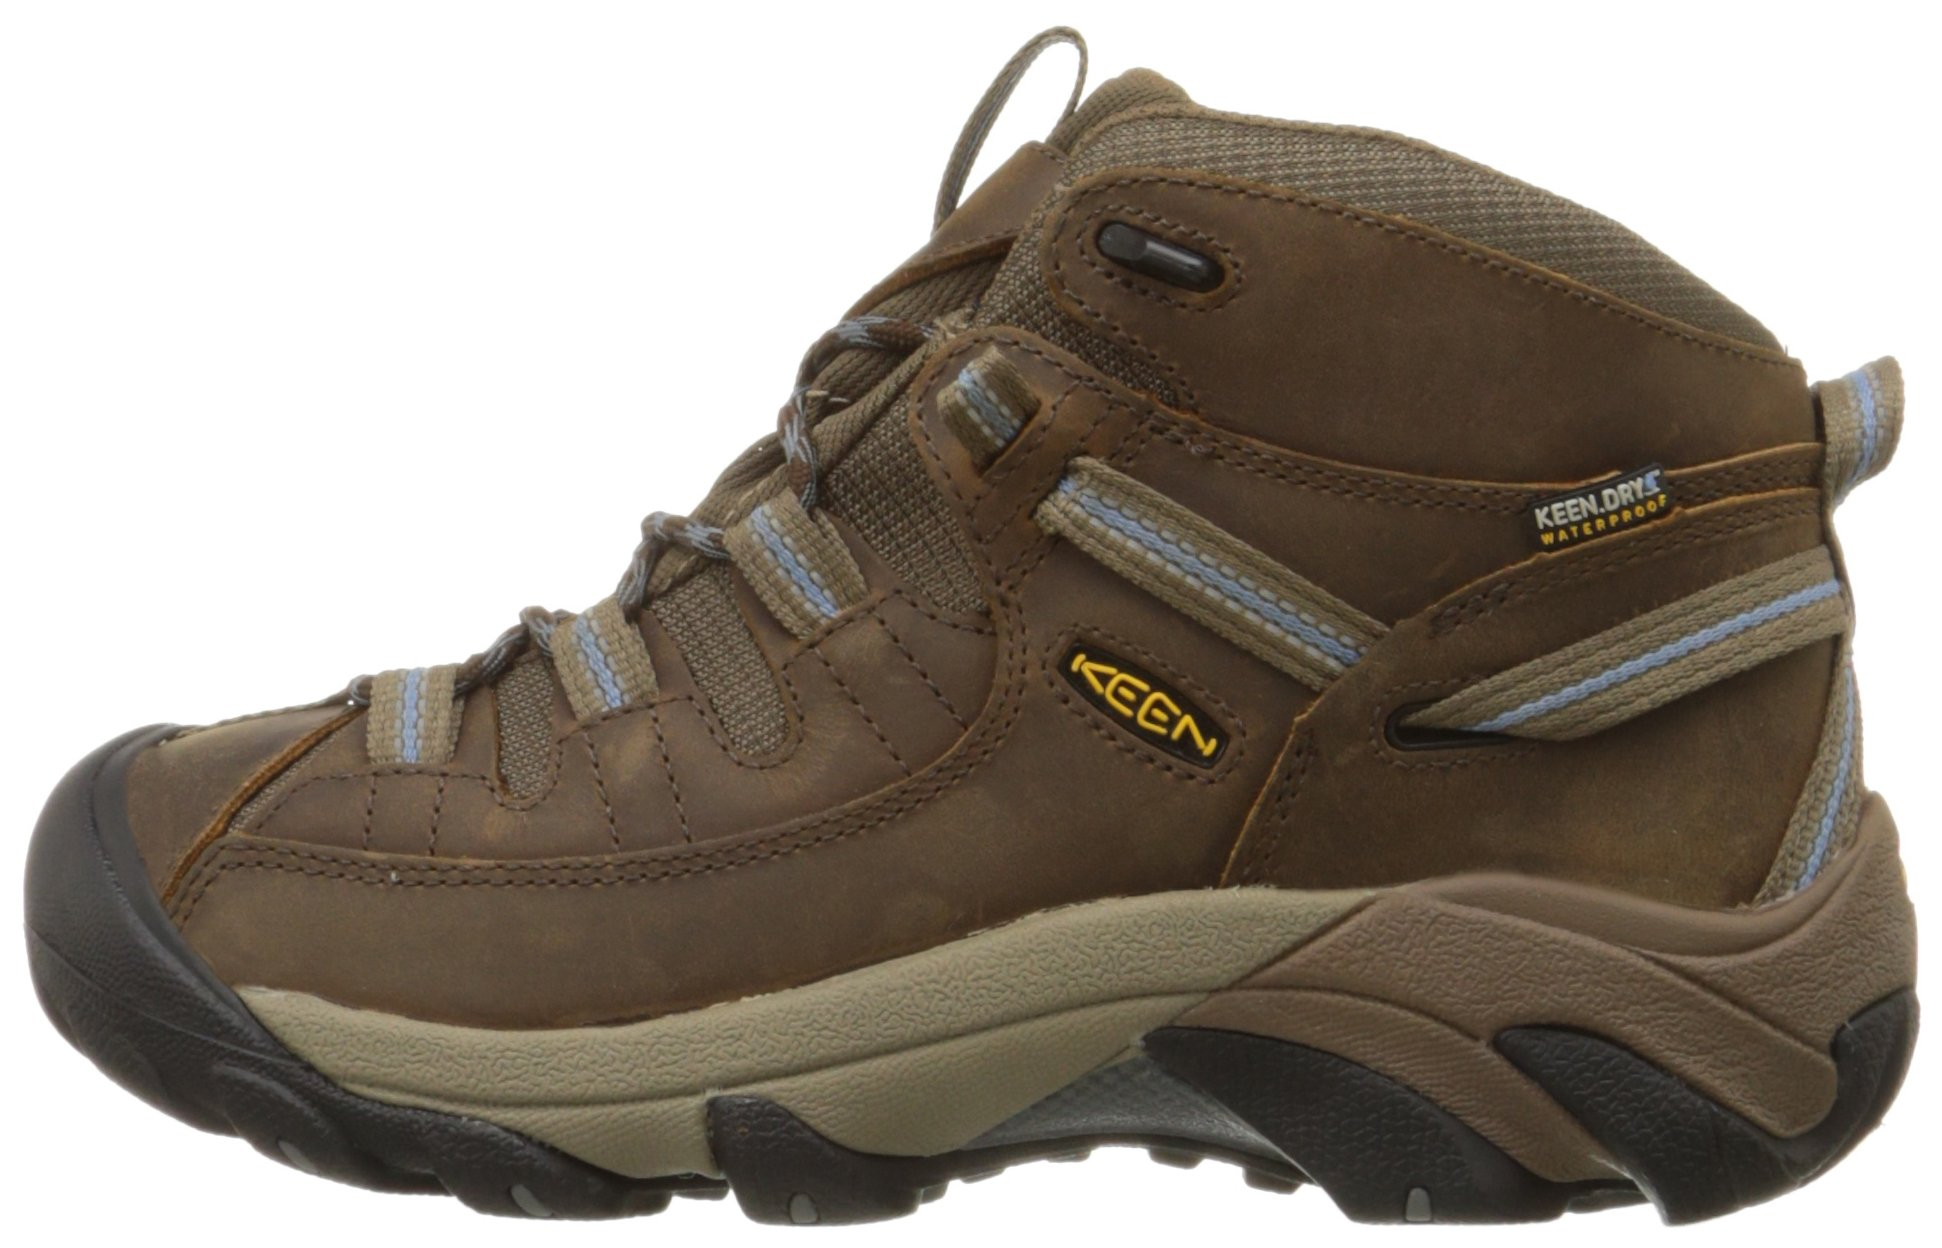 KEEN Women's Targhee II Mid Waterproof Hiking Boot,Slate Black/Flint Stone,8.5 M US by KEEN (Image #5)